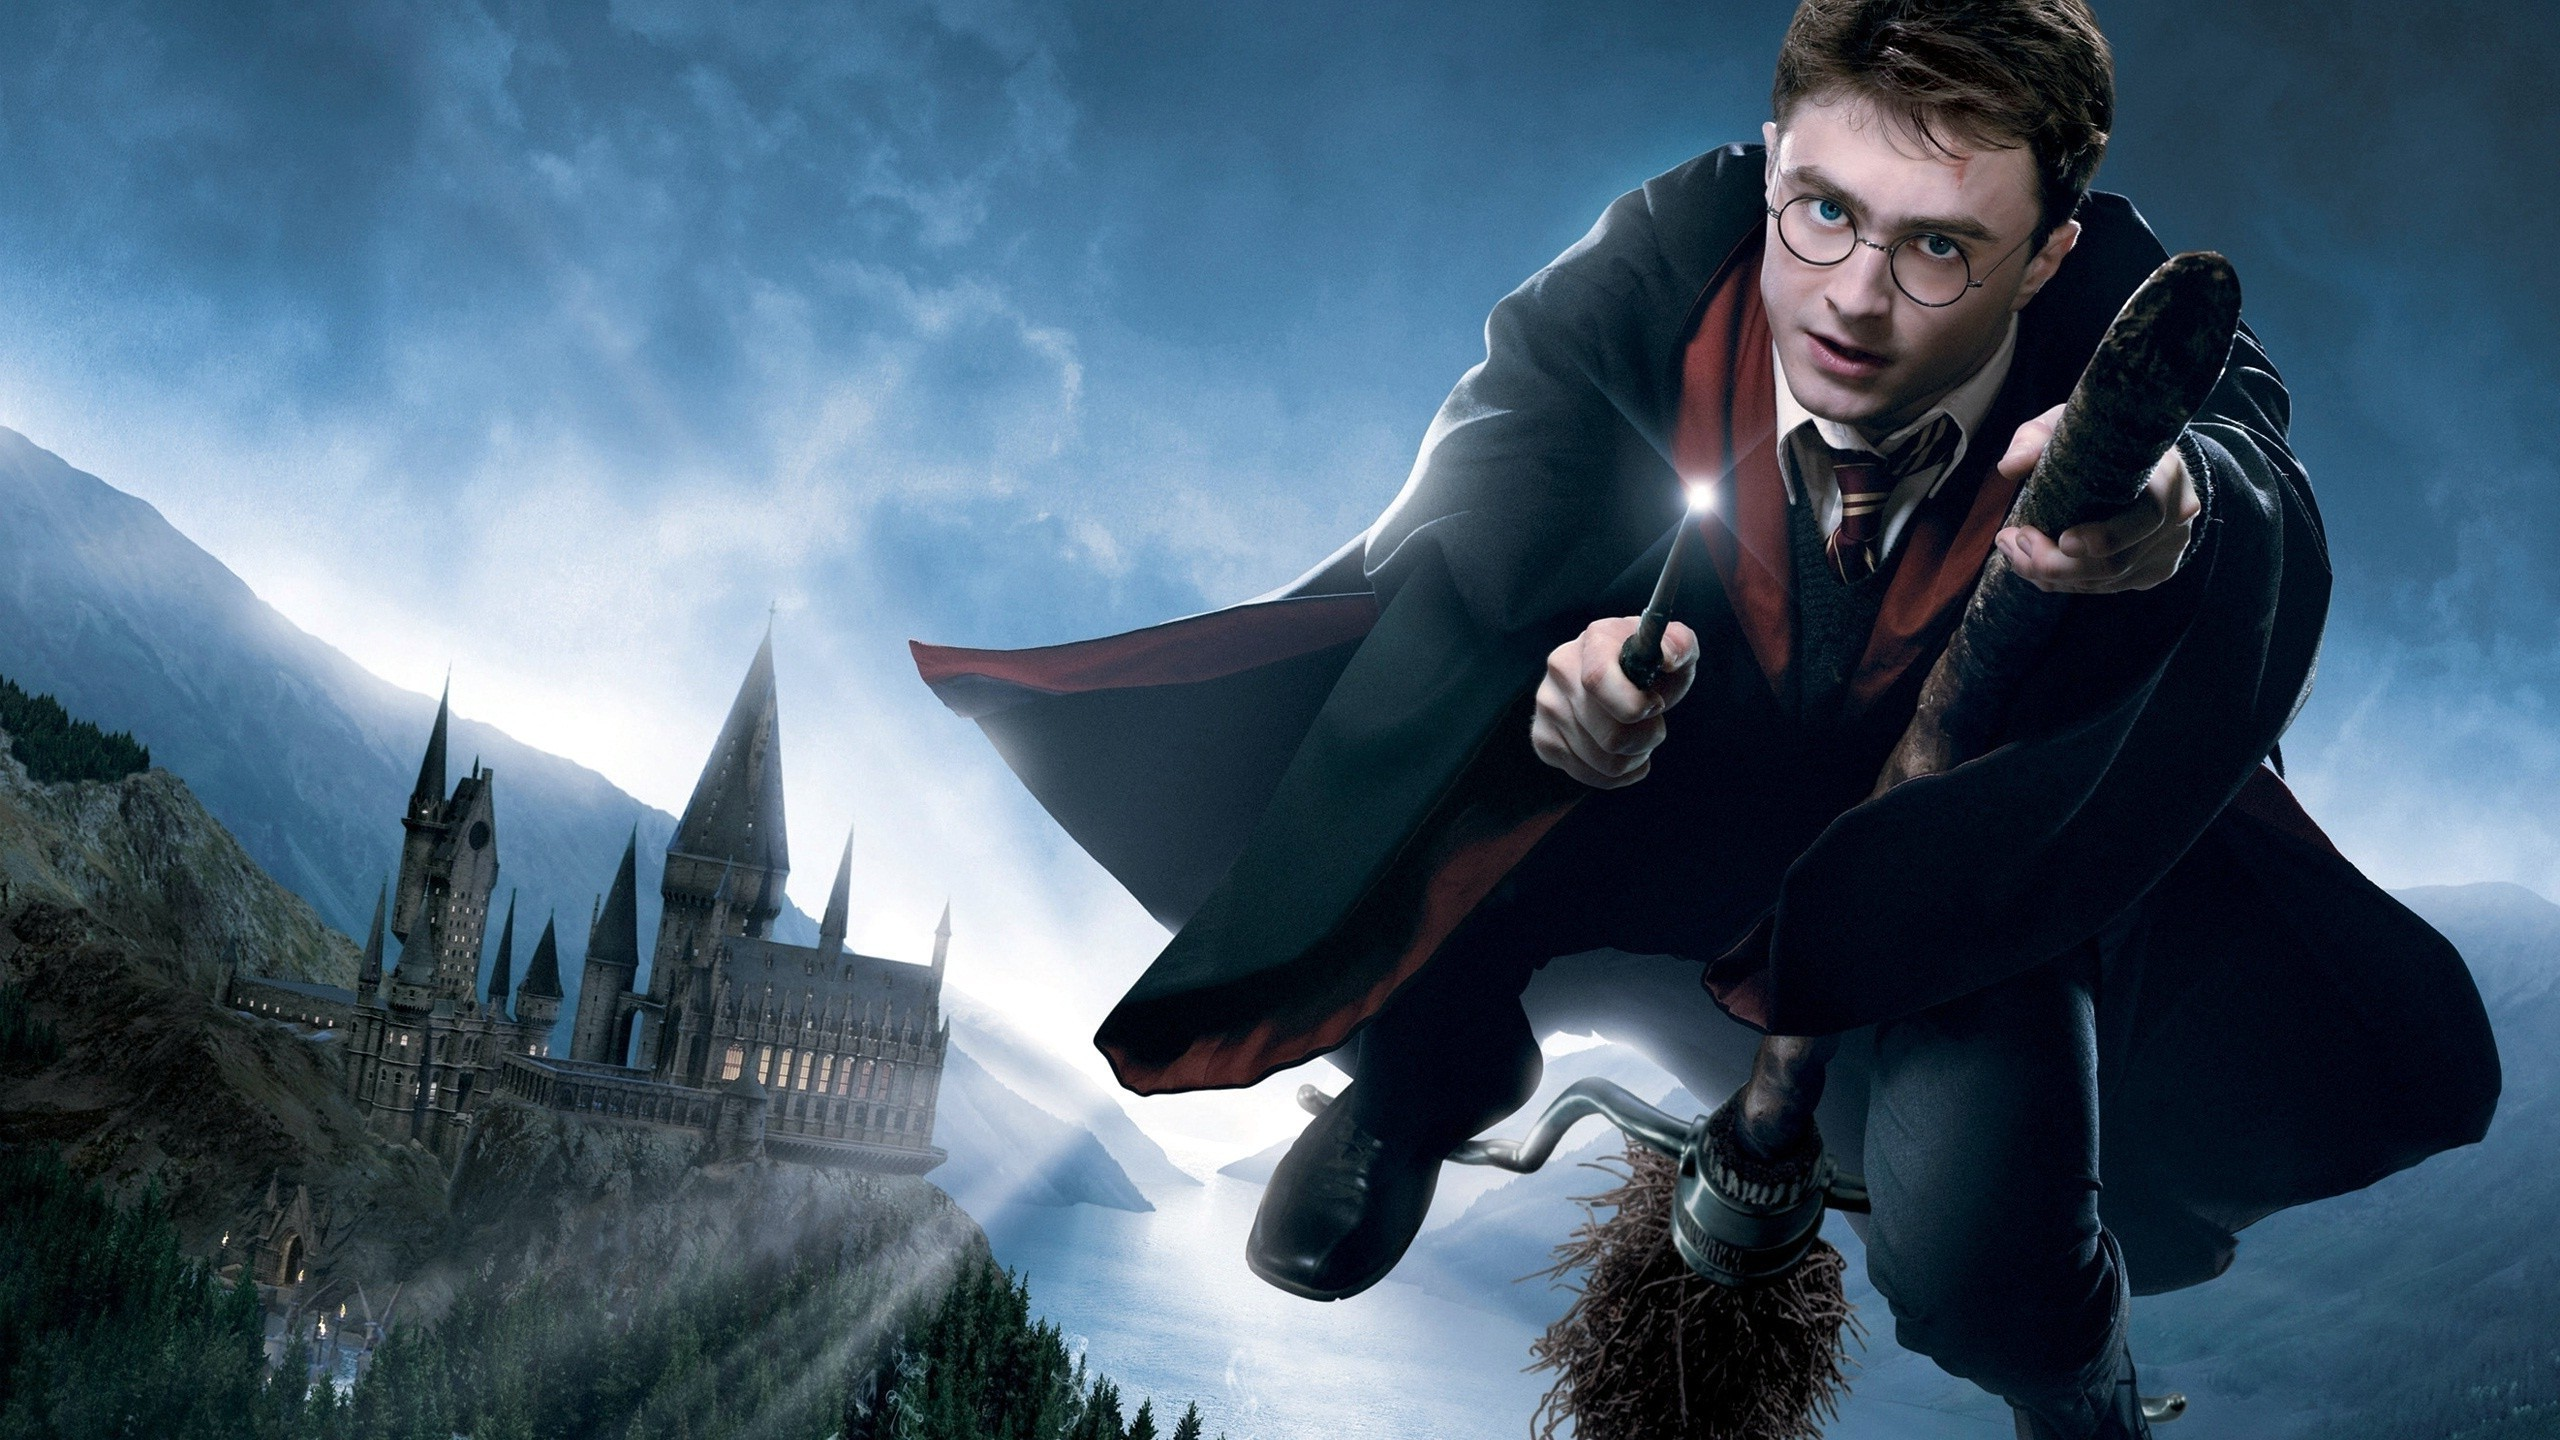 movies, Harry Potter, Hogwarts, Castle, Daniel Radcliffe, Harry Potter And  The Goblet Of Fire Wallpapers HD / Desktop and Mobile Backgrounds